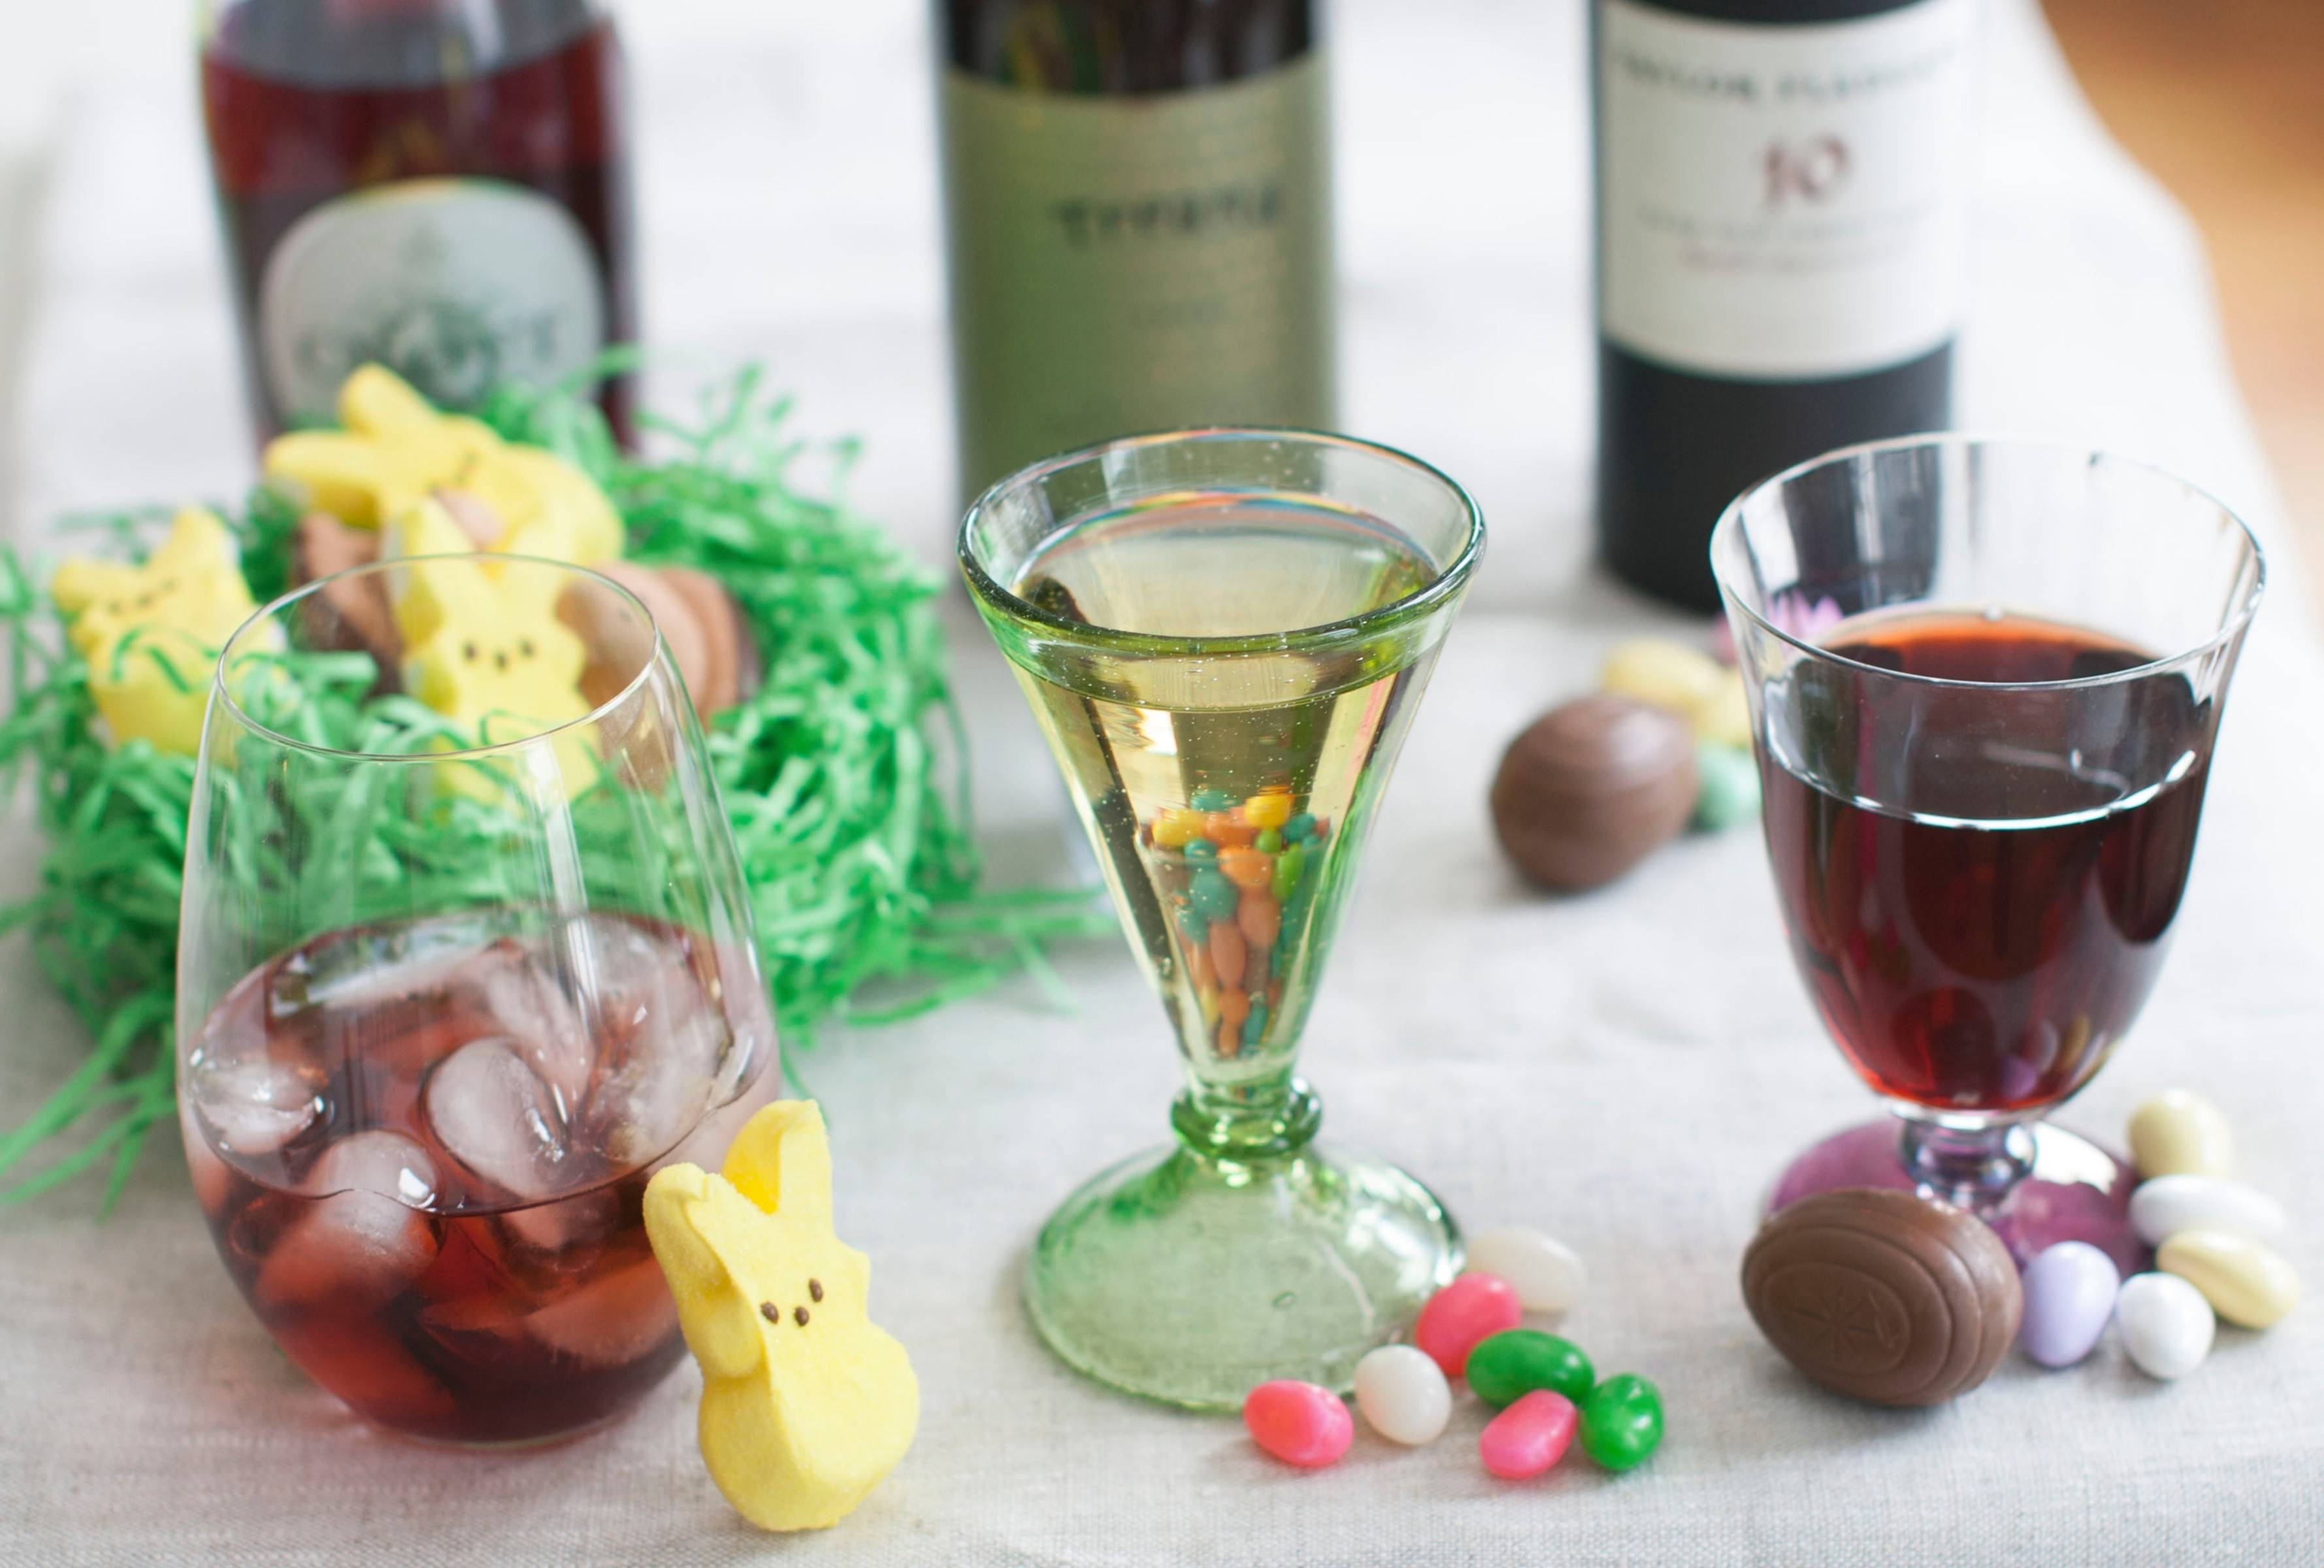 Adults can enjoy Easter treats in the form of these fun drinks.